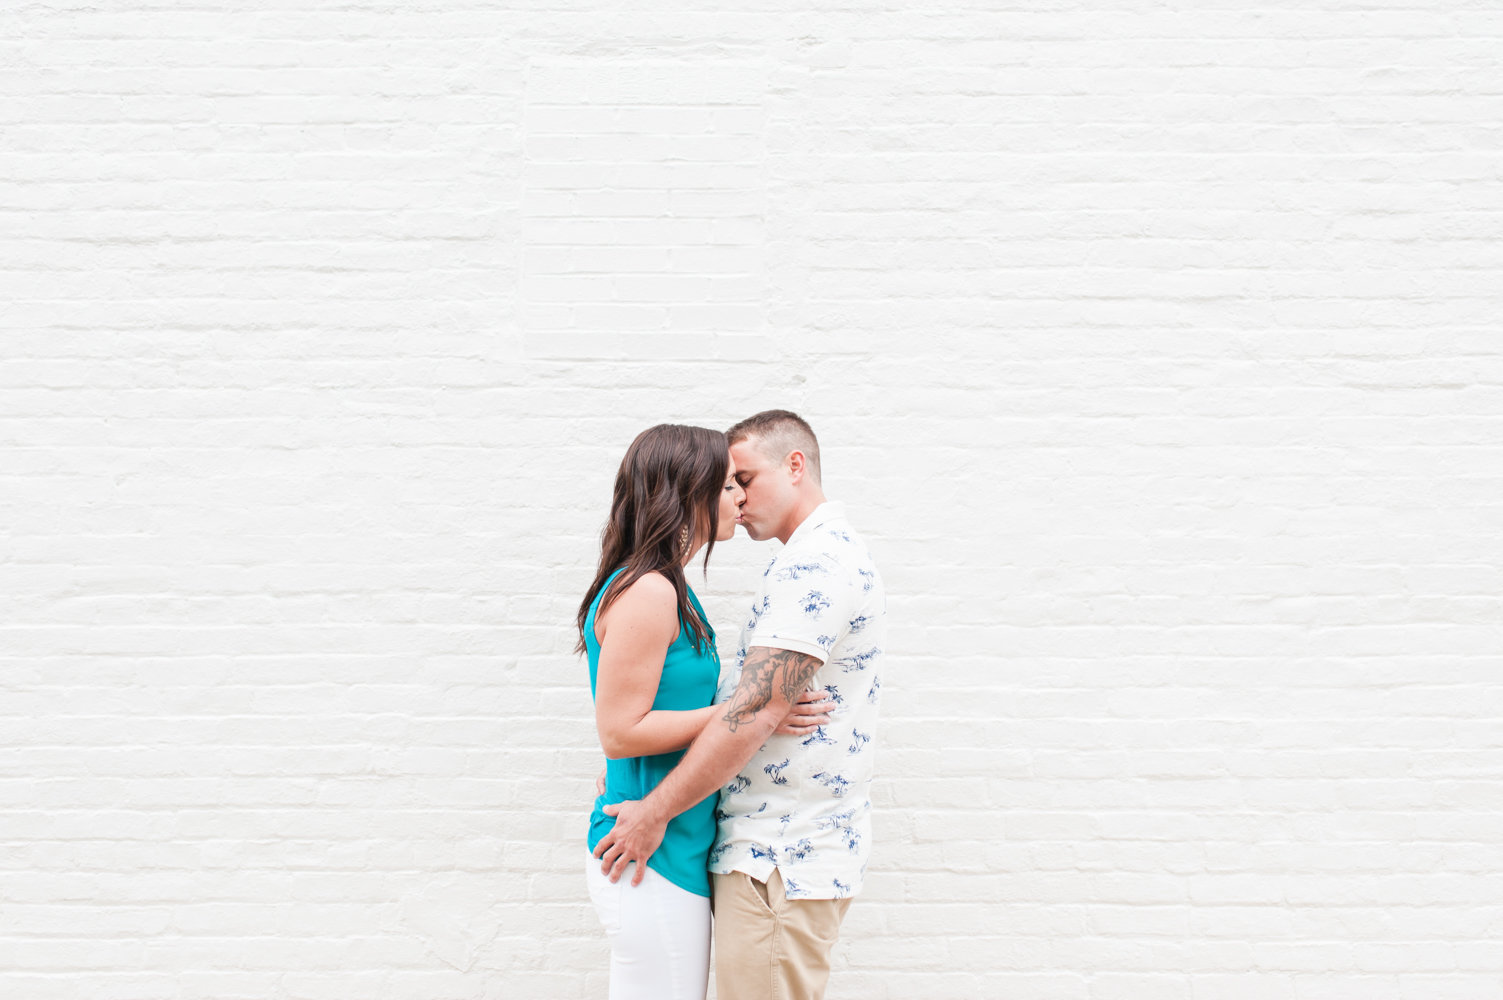 engagement-portraits-christina-forbes-photography-23